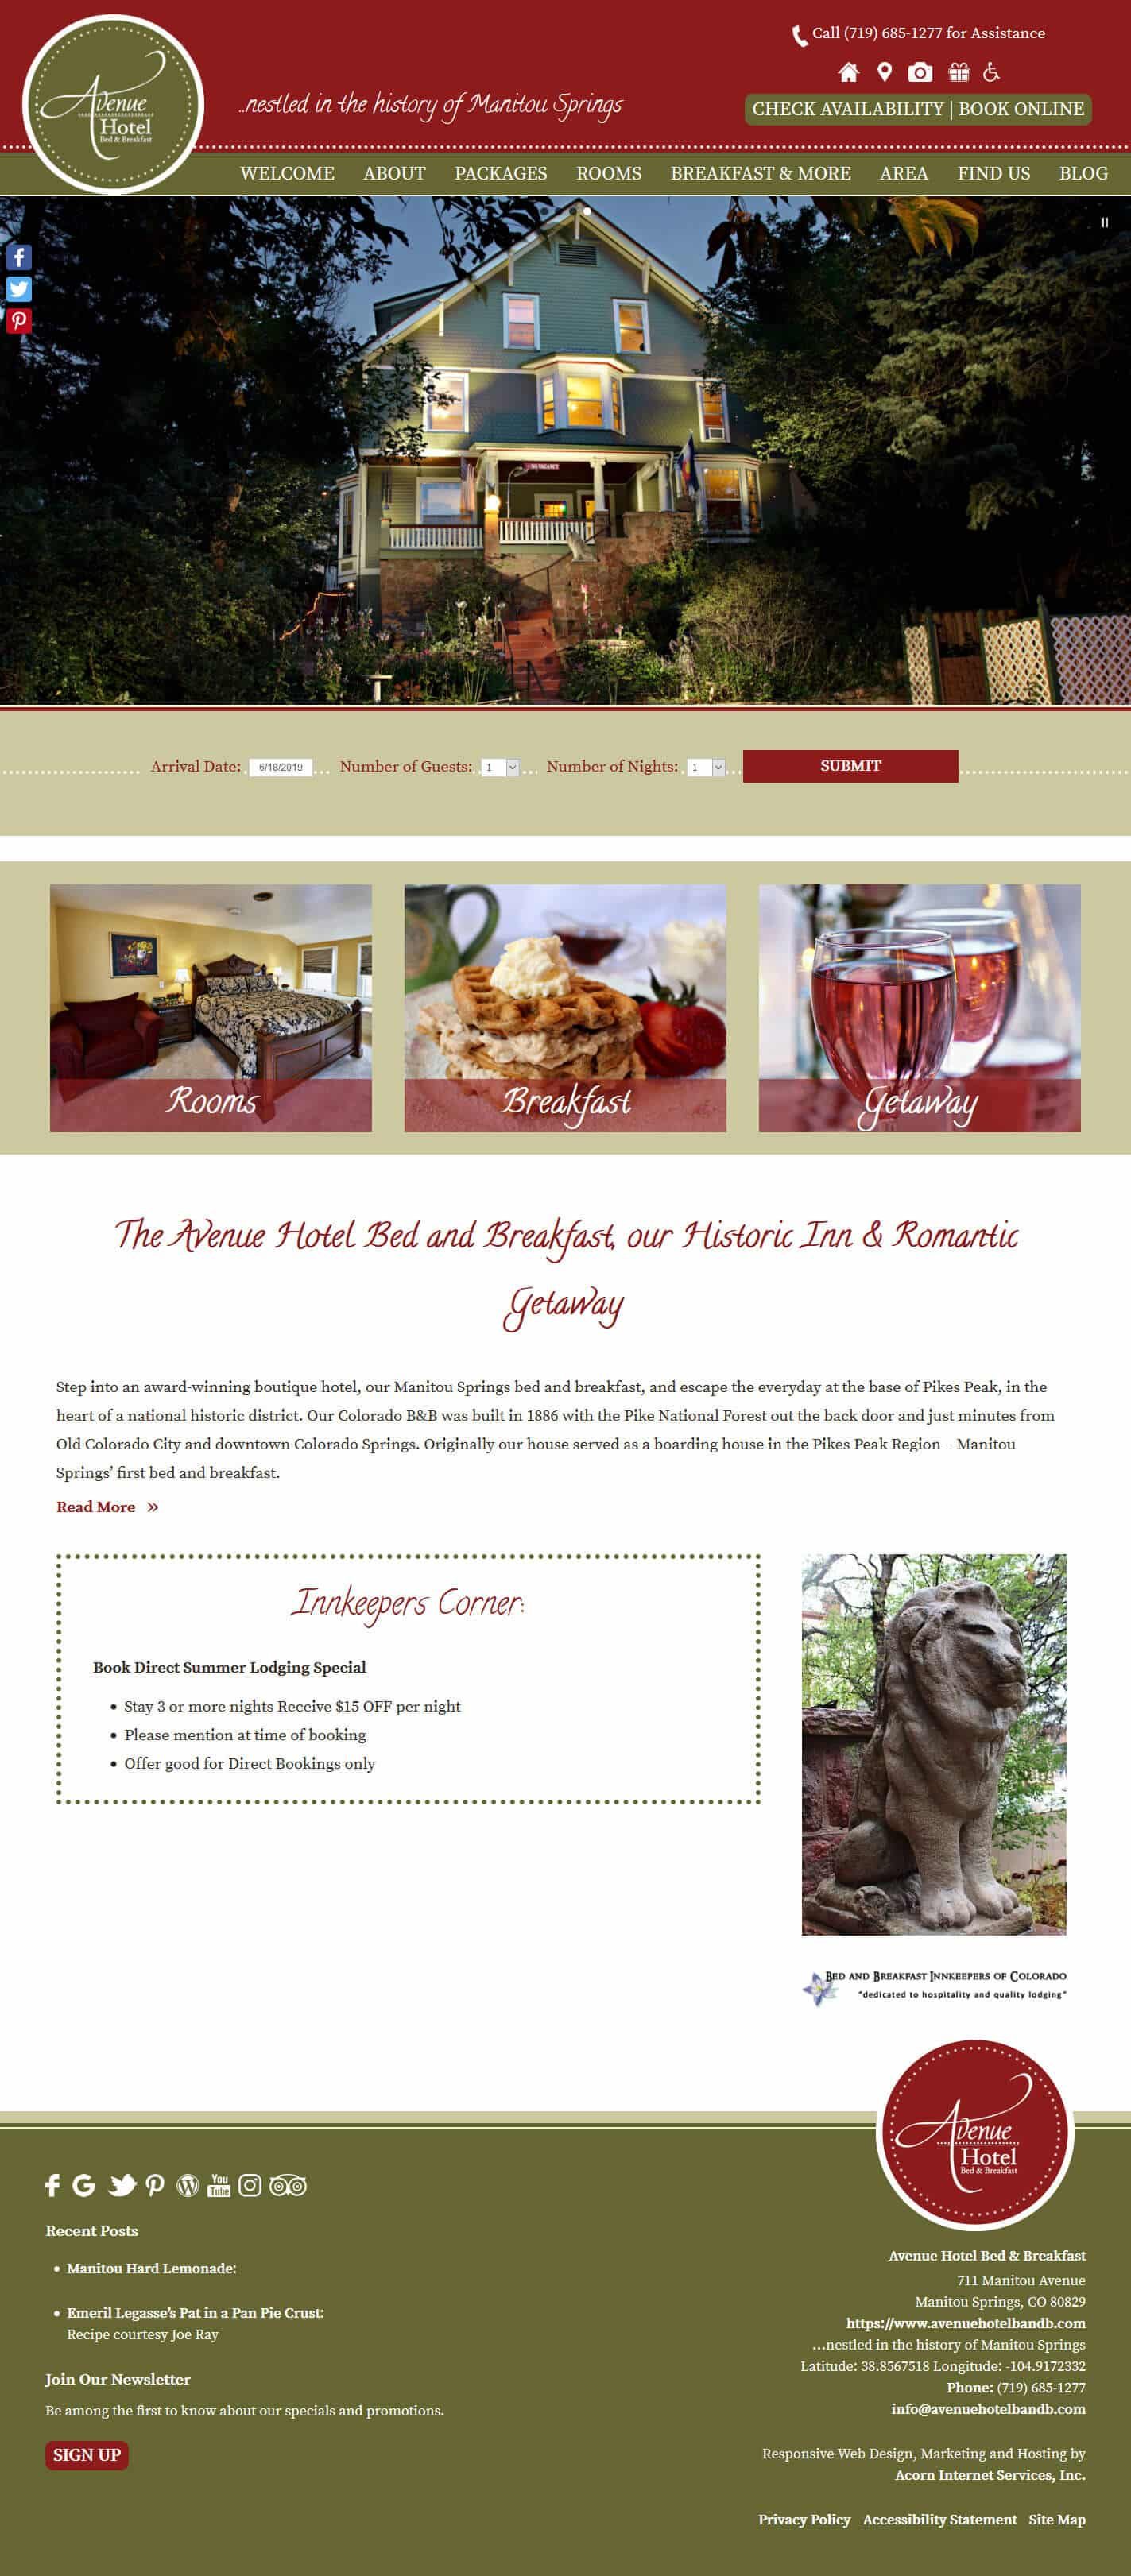 Avenue Hotel Bed & Breakfast website home page